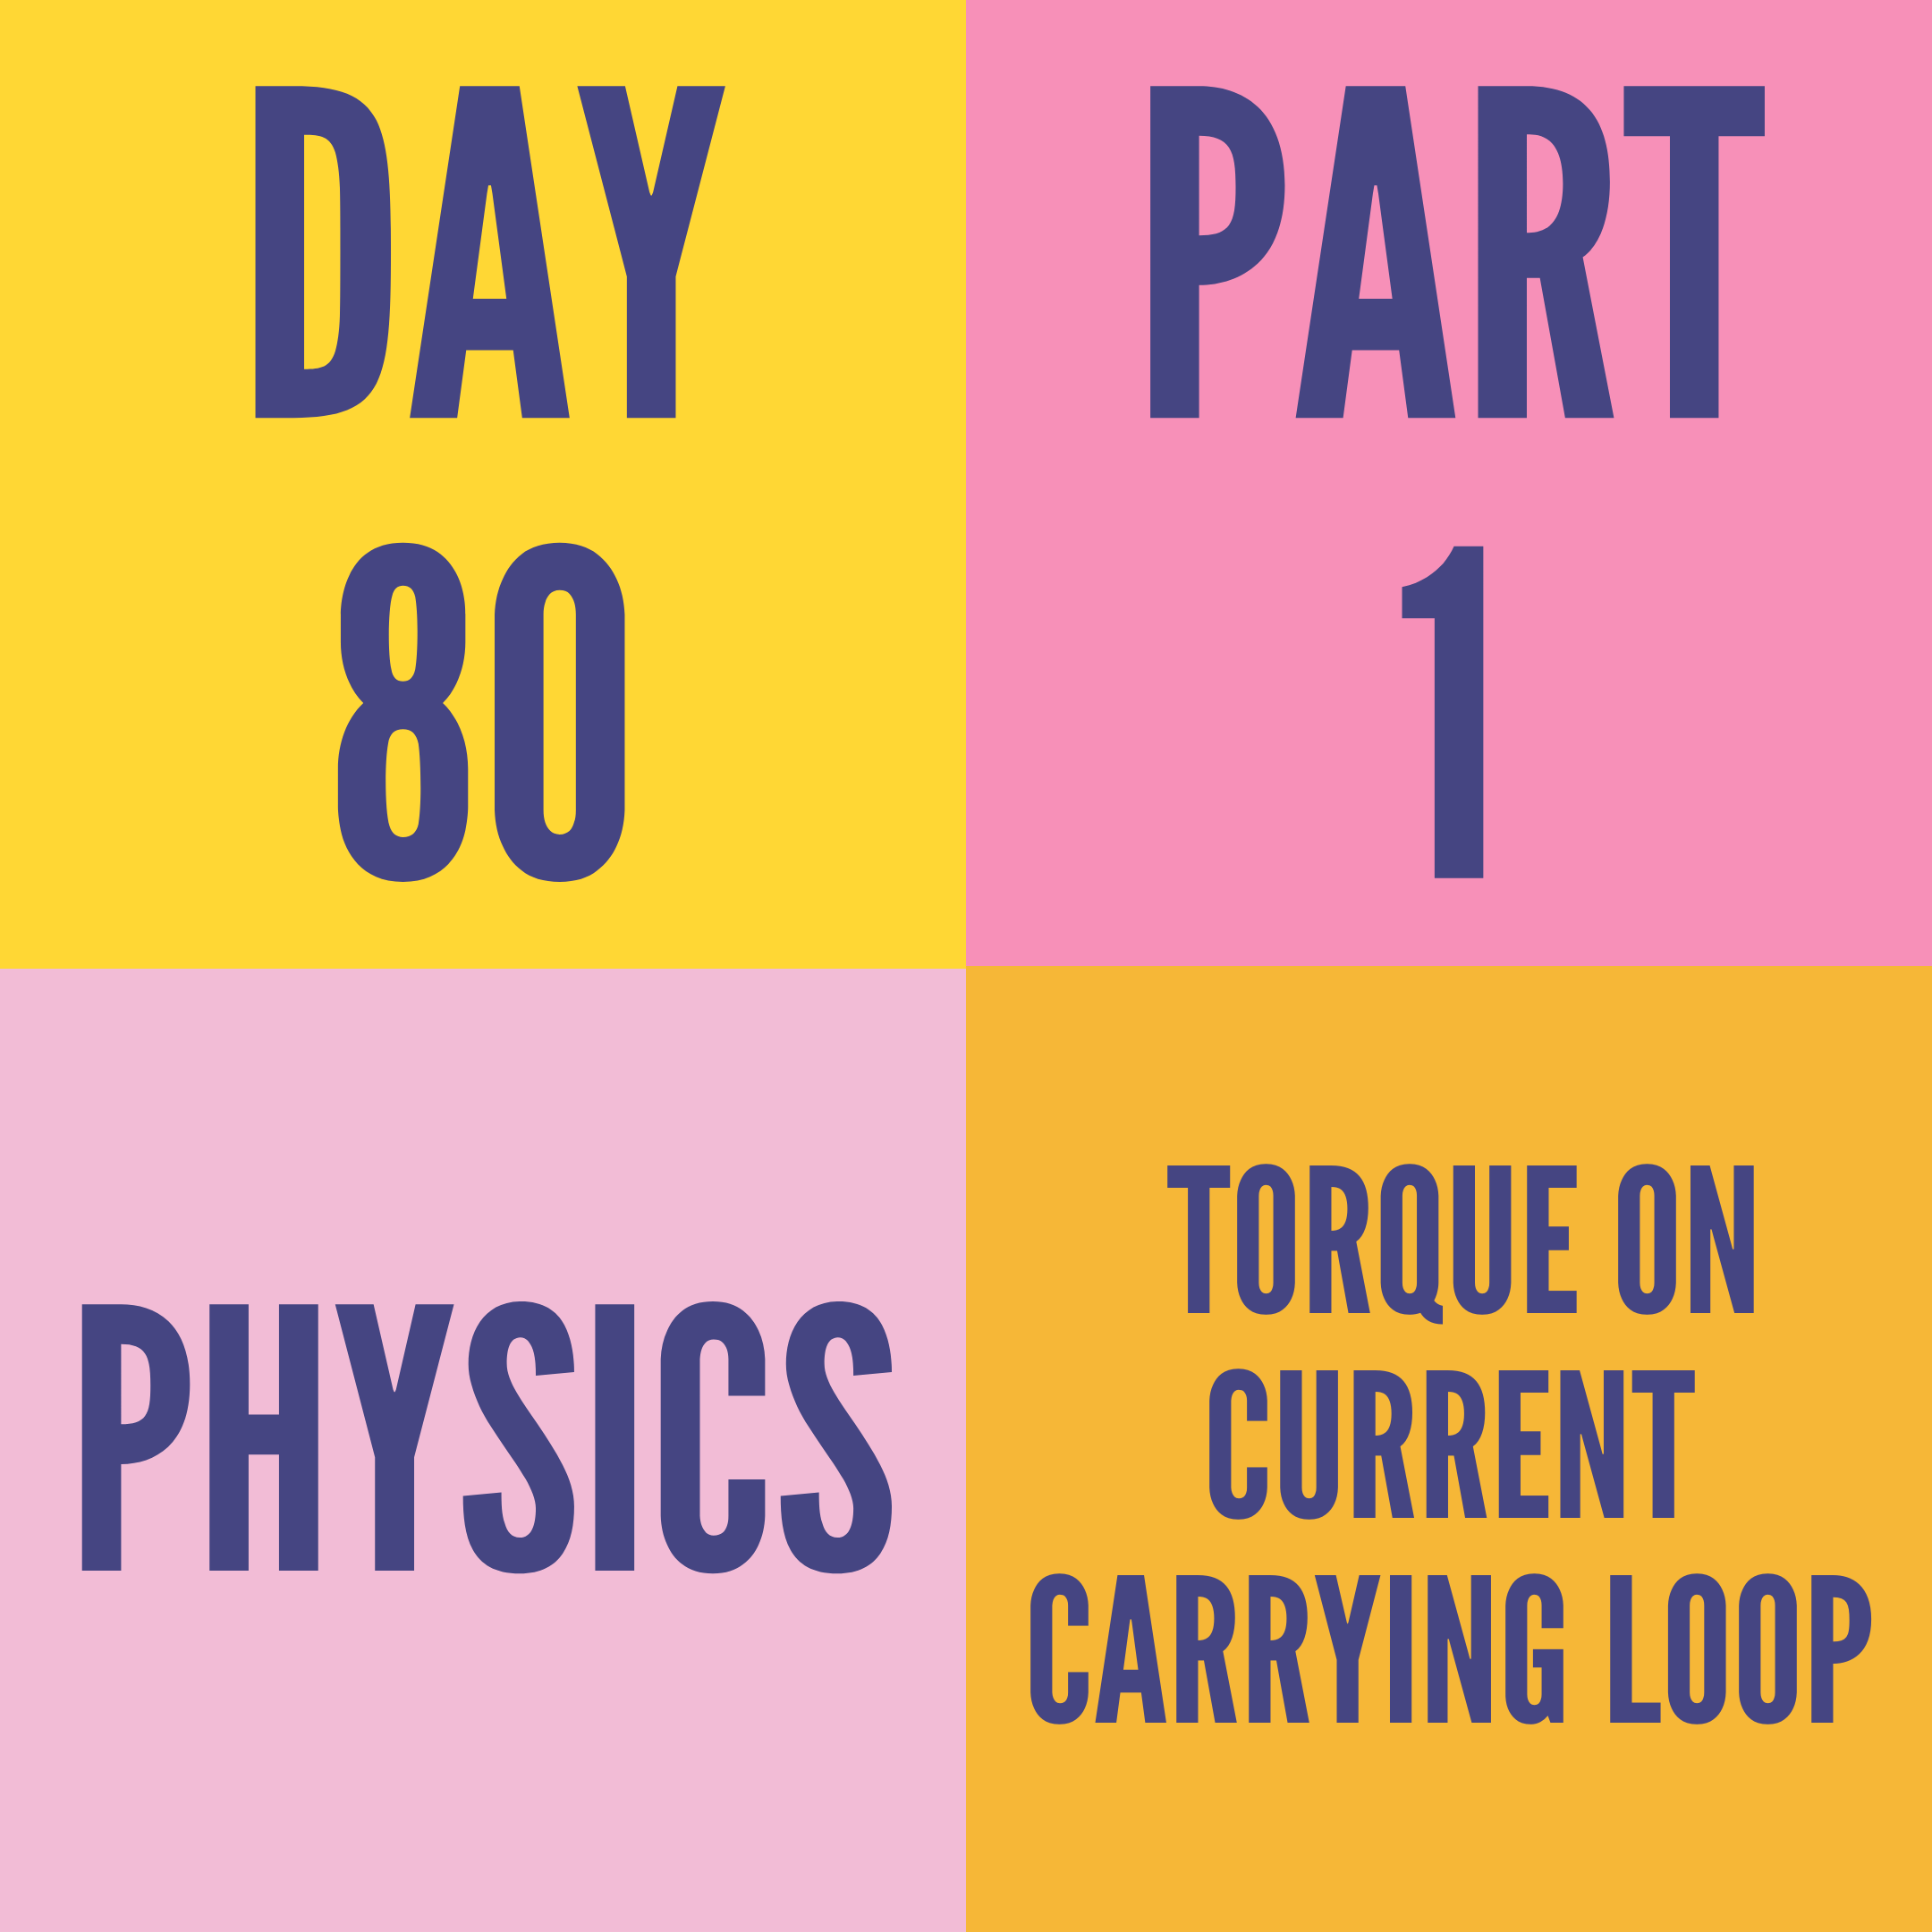 DAY-80 PART-1 TORQUE ON CURRENT CARRYING LOOP